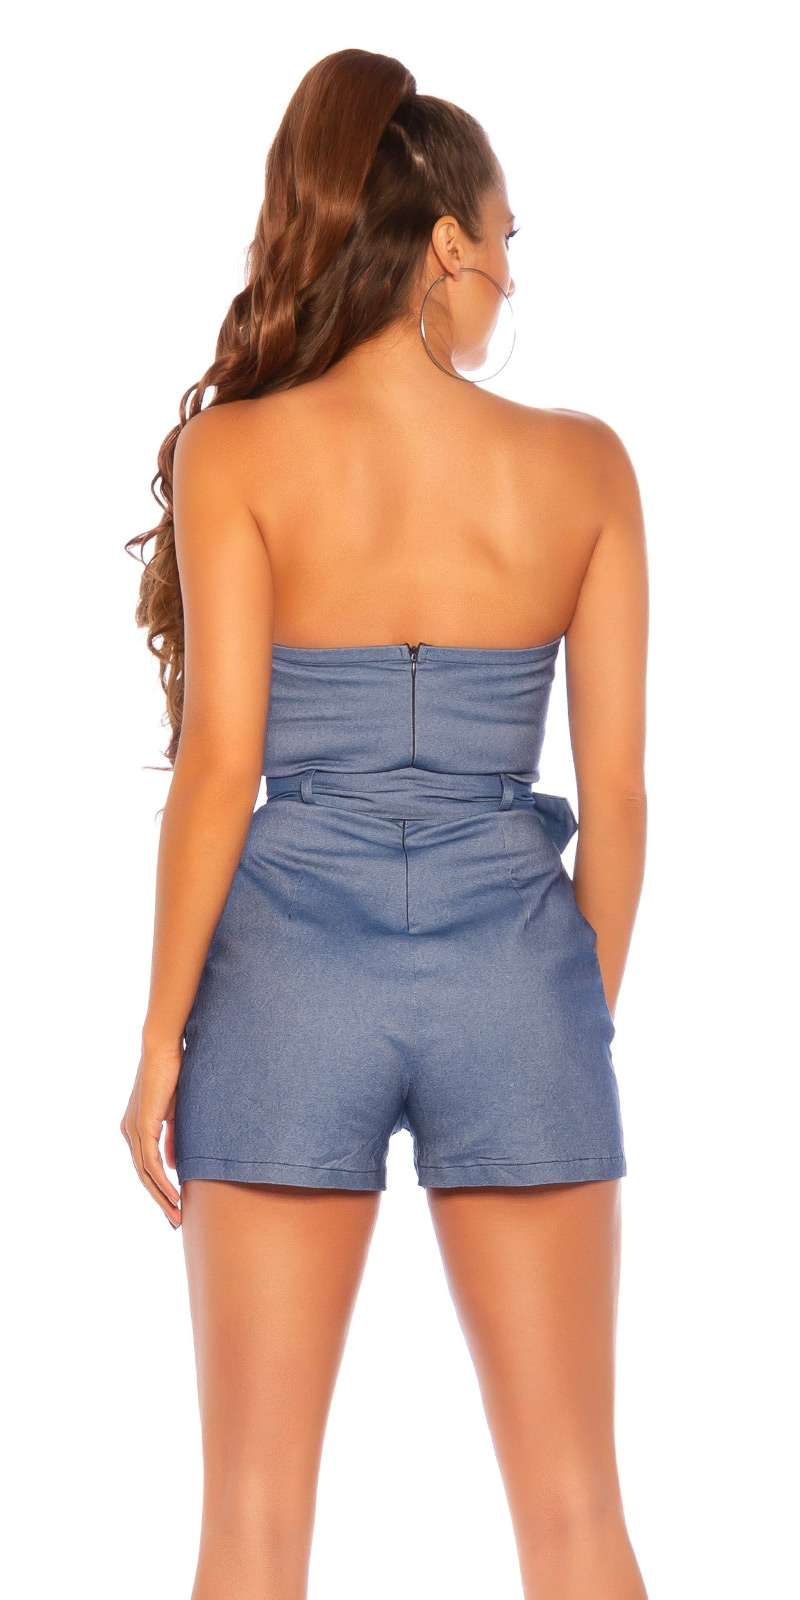 Jeanslook Overall